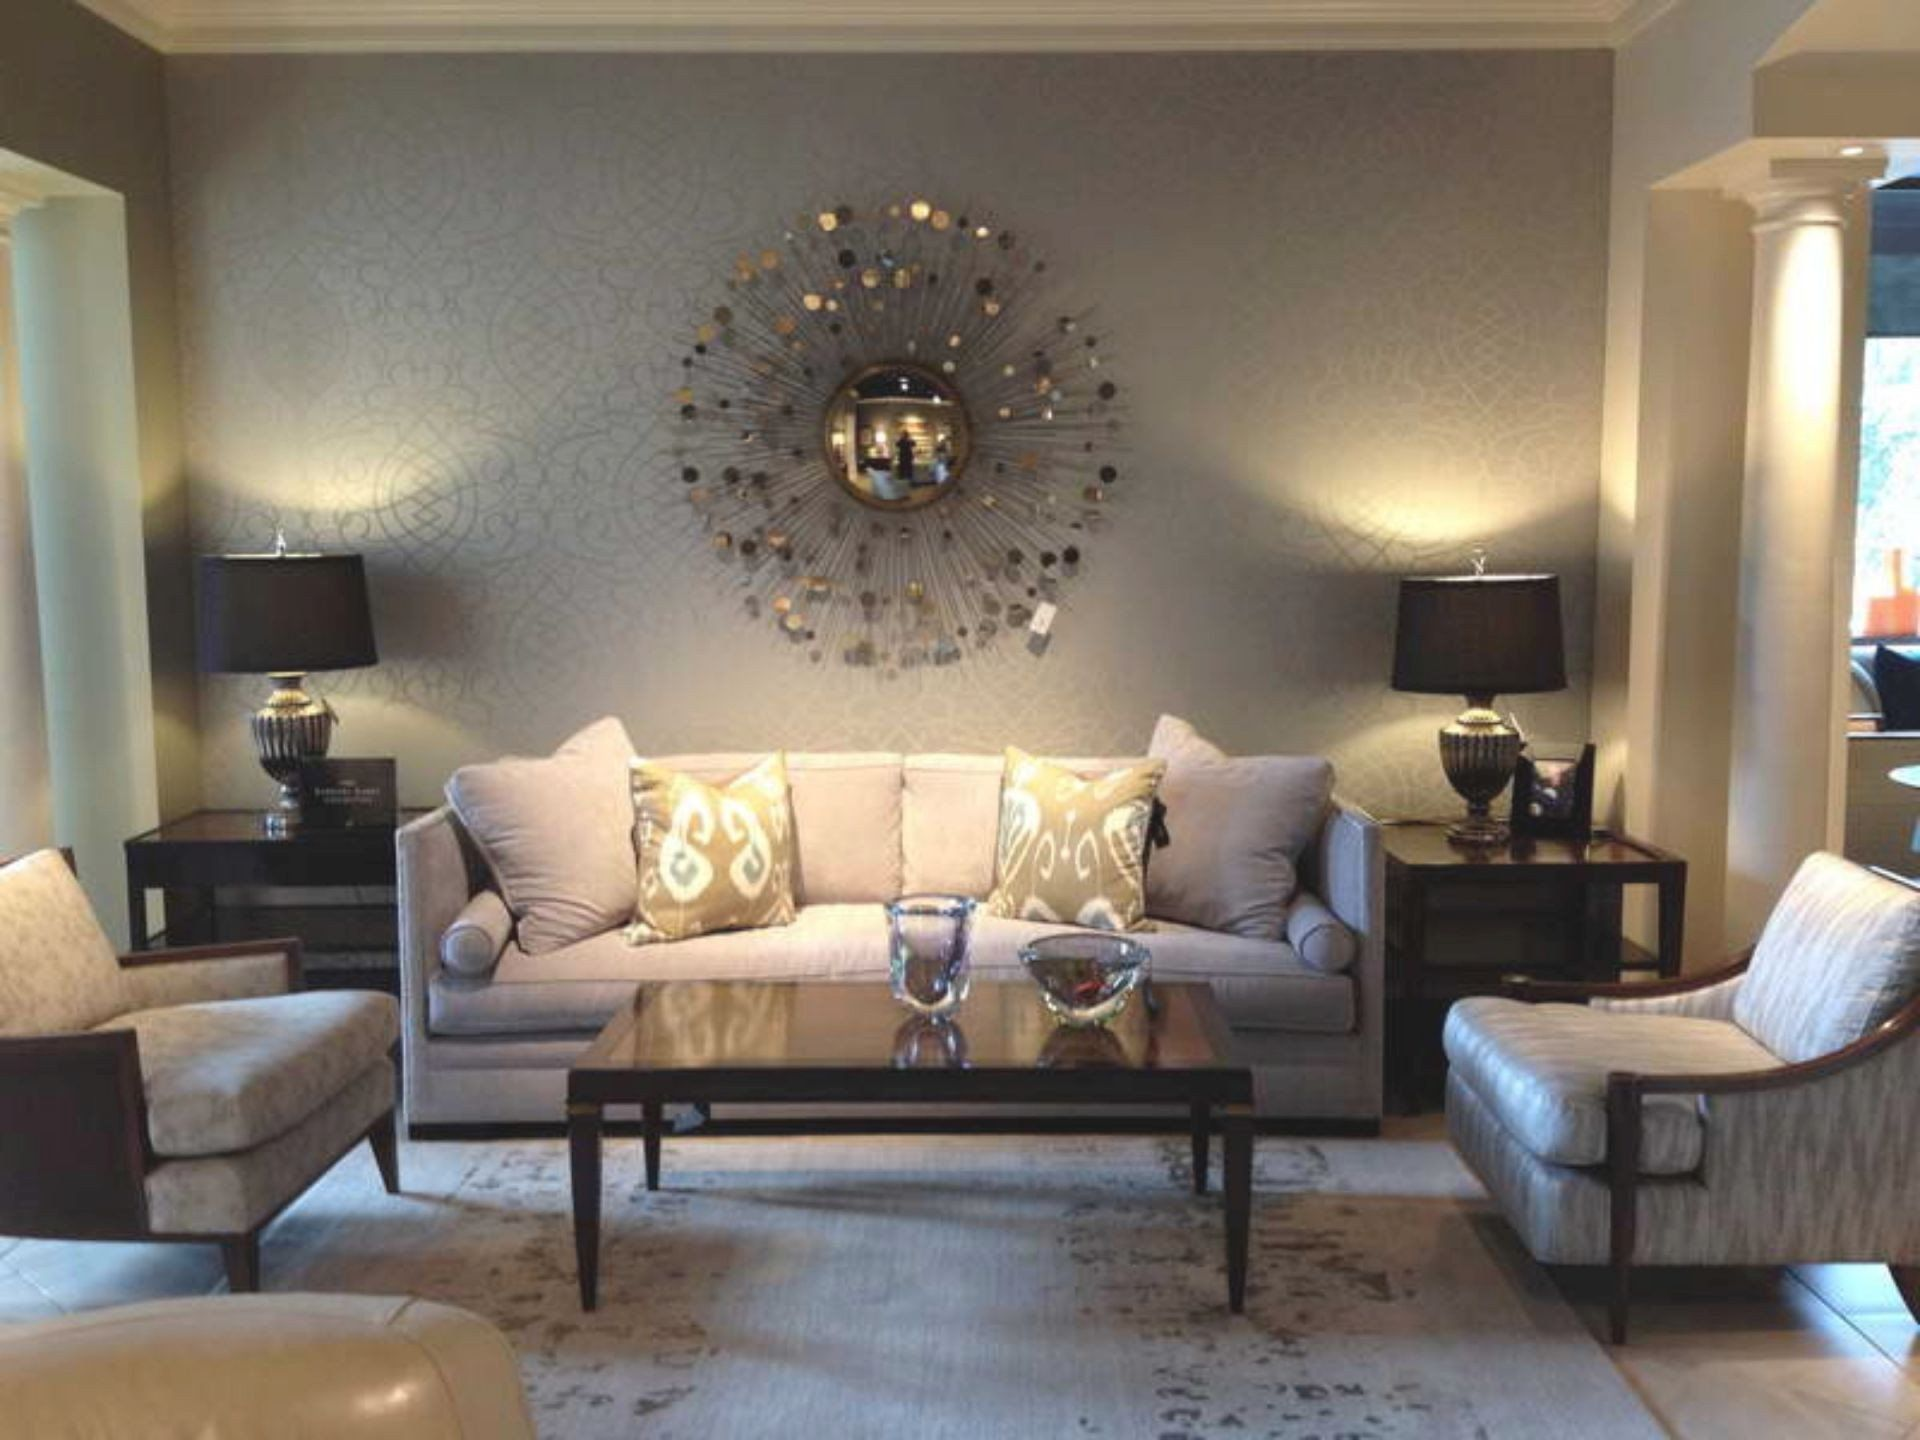 Decorate Large Wall Living Room Wall Decor Ideas Decoration Brilliant Decorating With Cheap Living Room Decor Living Room Decor Apartment Pinterest Living Room